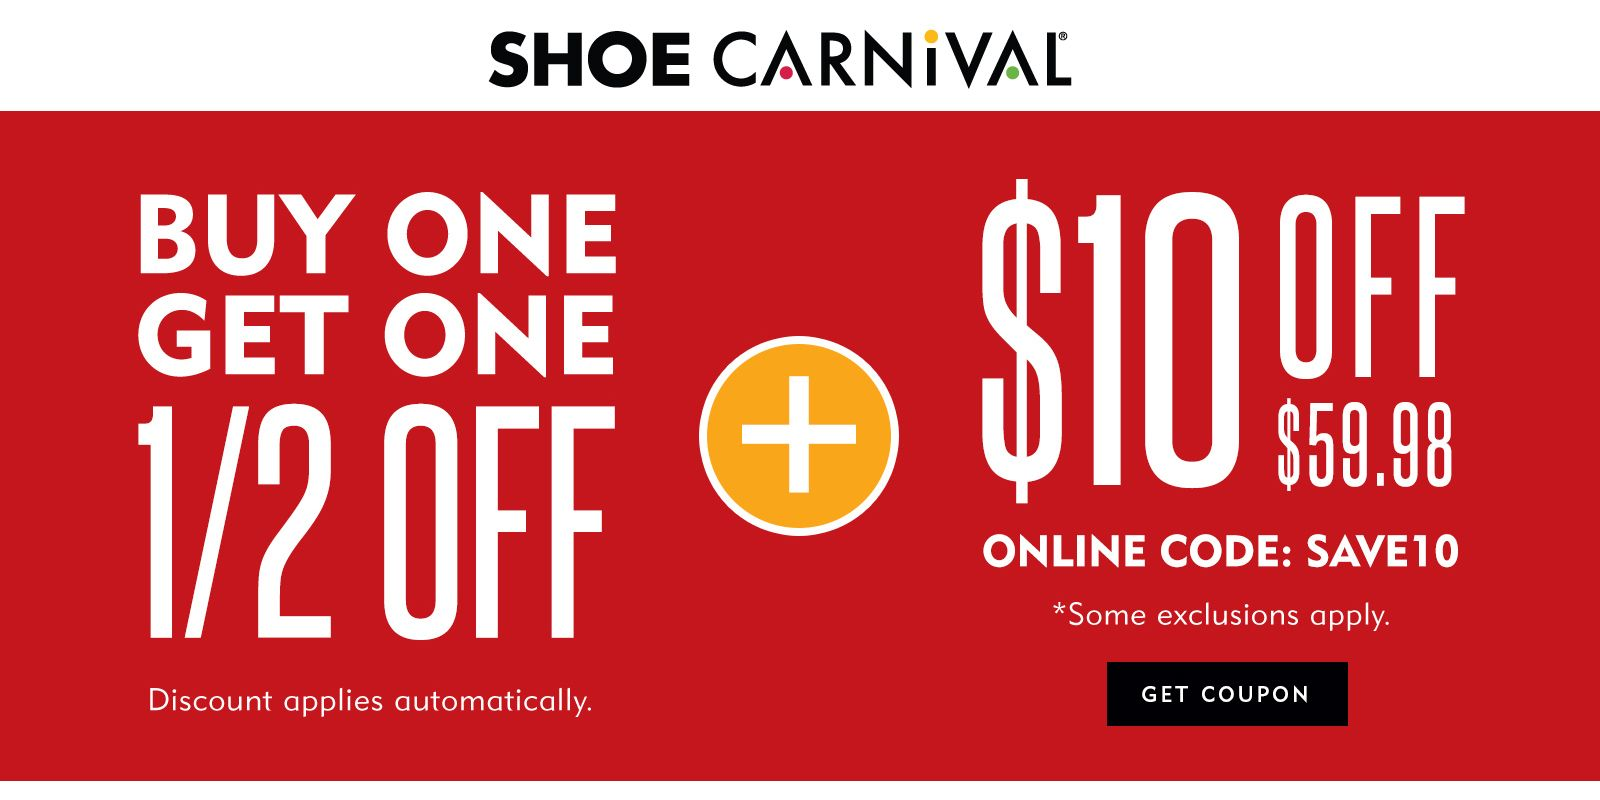 $10 Off Over $59.98 #Shoes #carnival